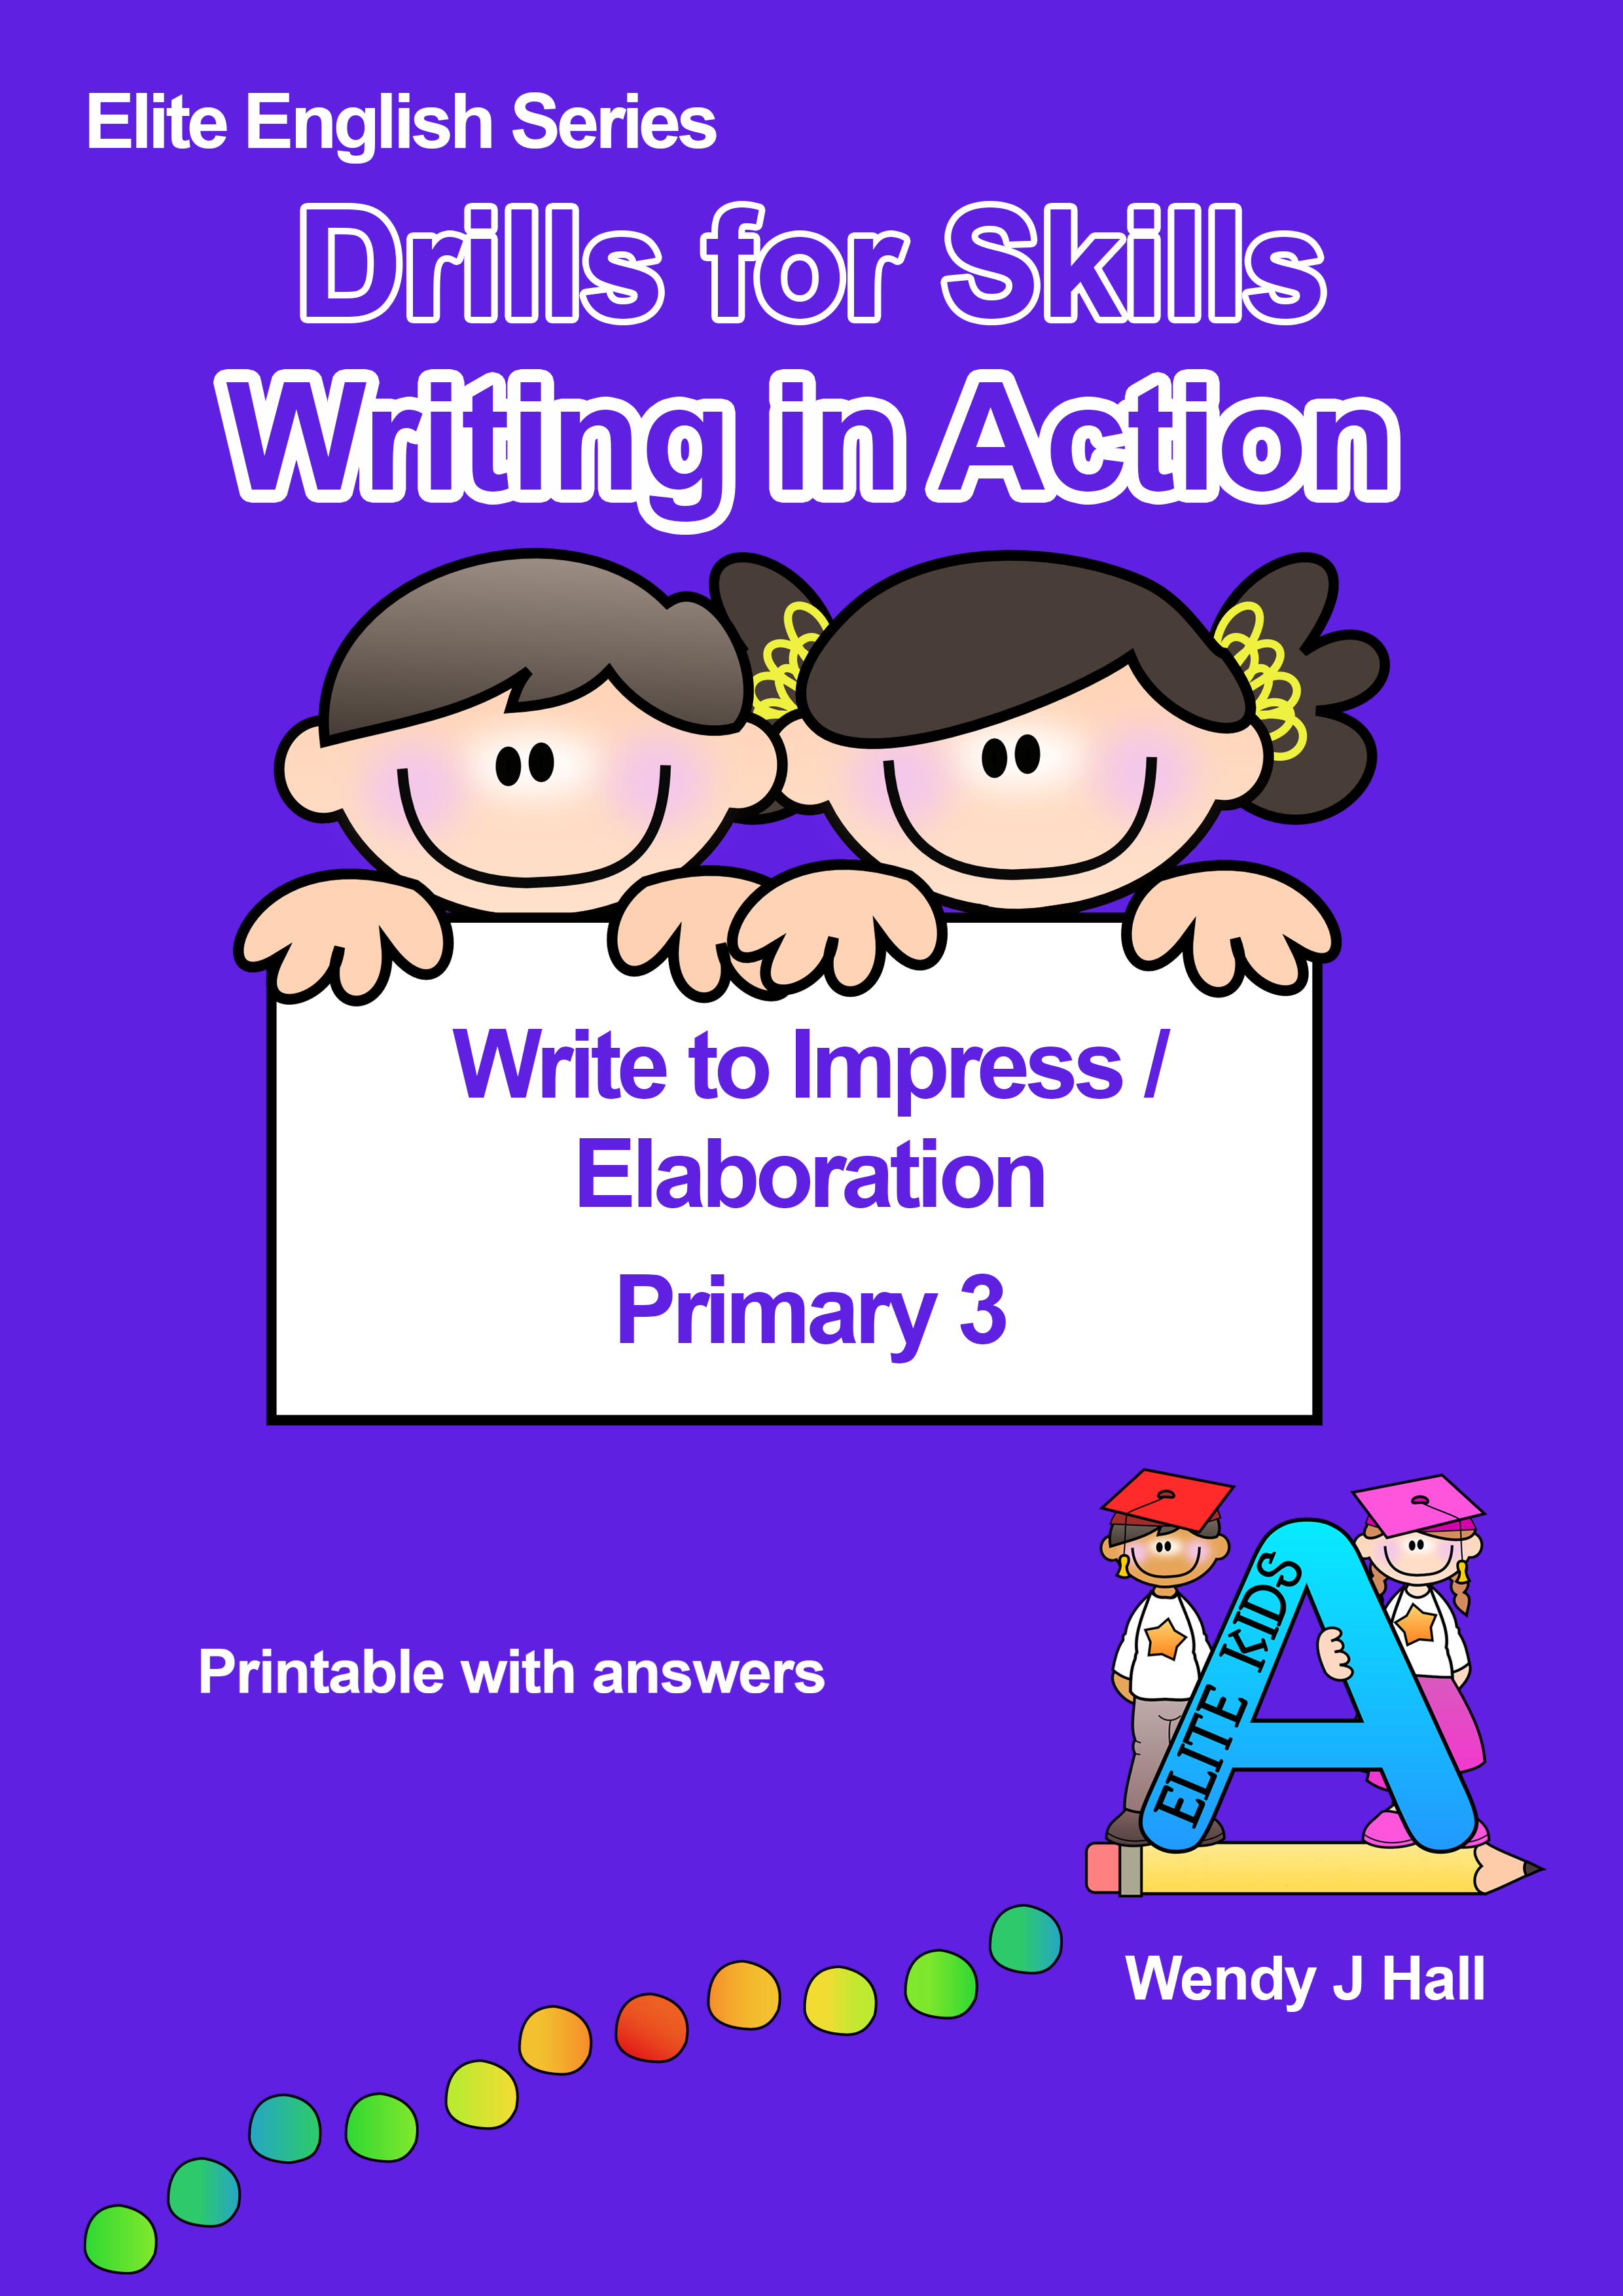 Drills for Skills - Writing in Action | Primary 3